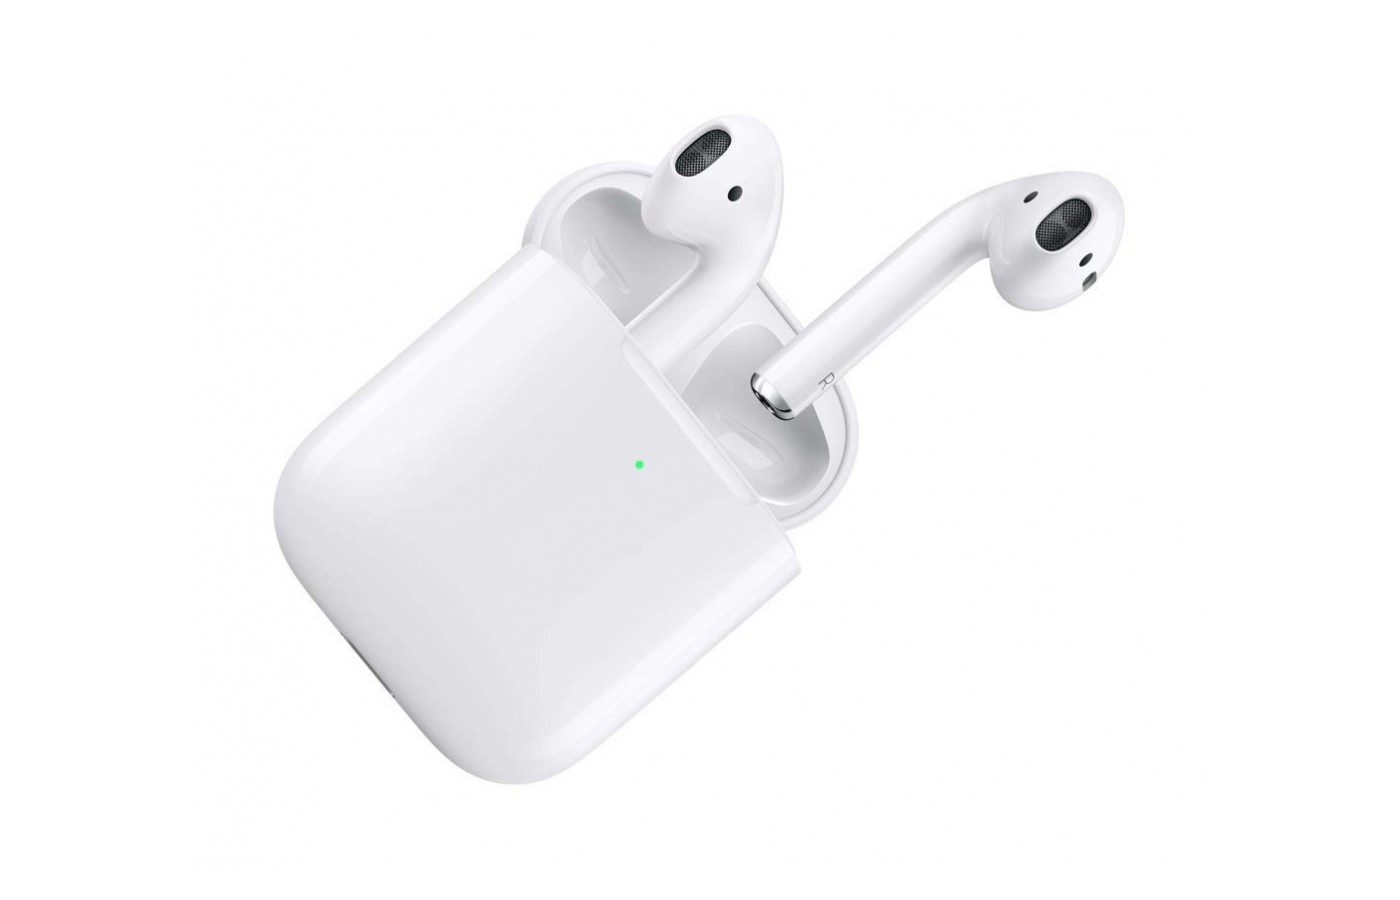 Apple AirPods angle